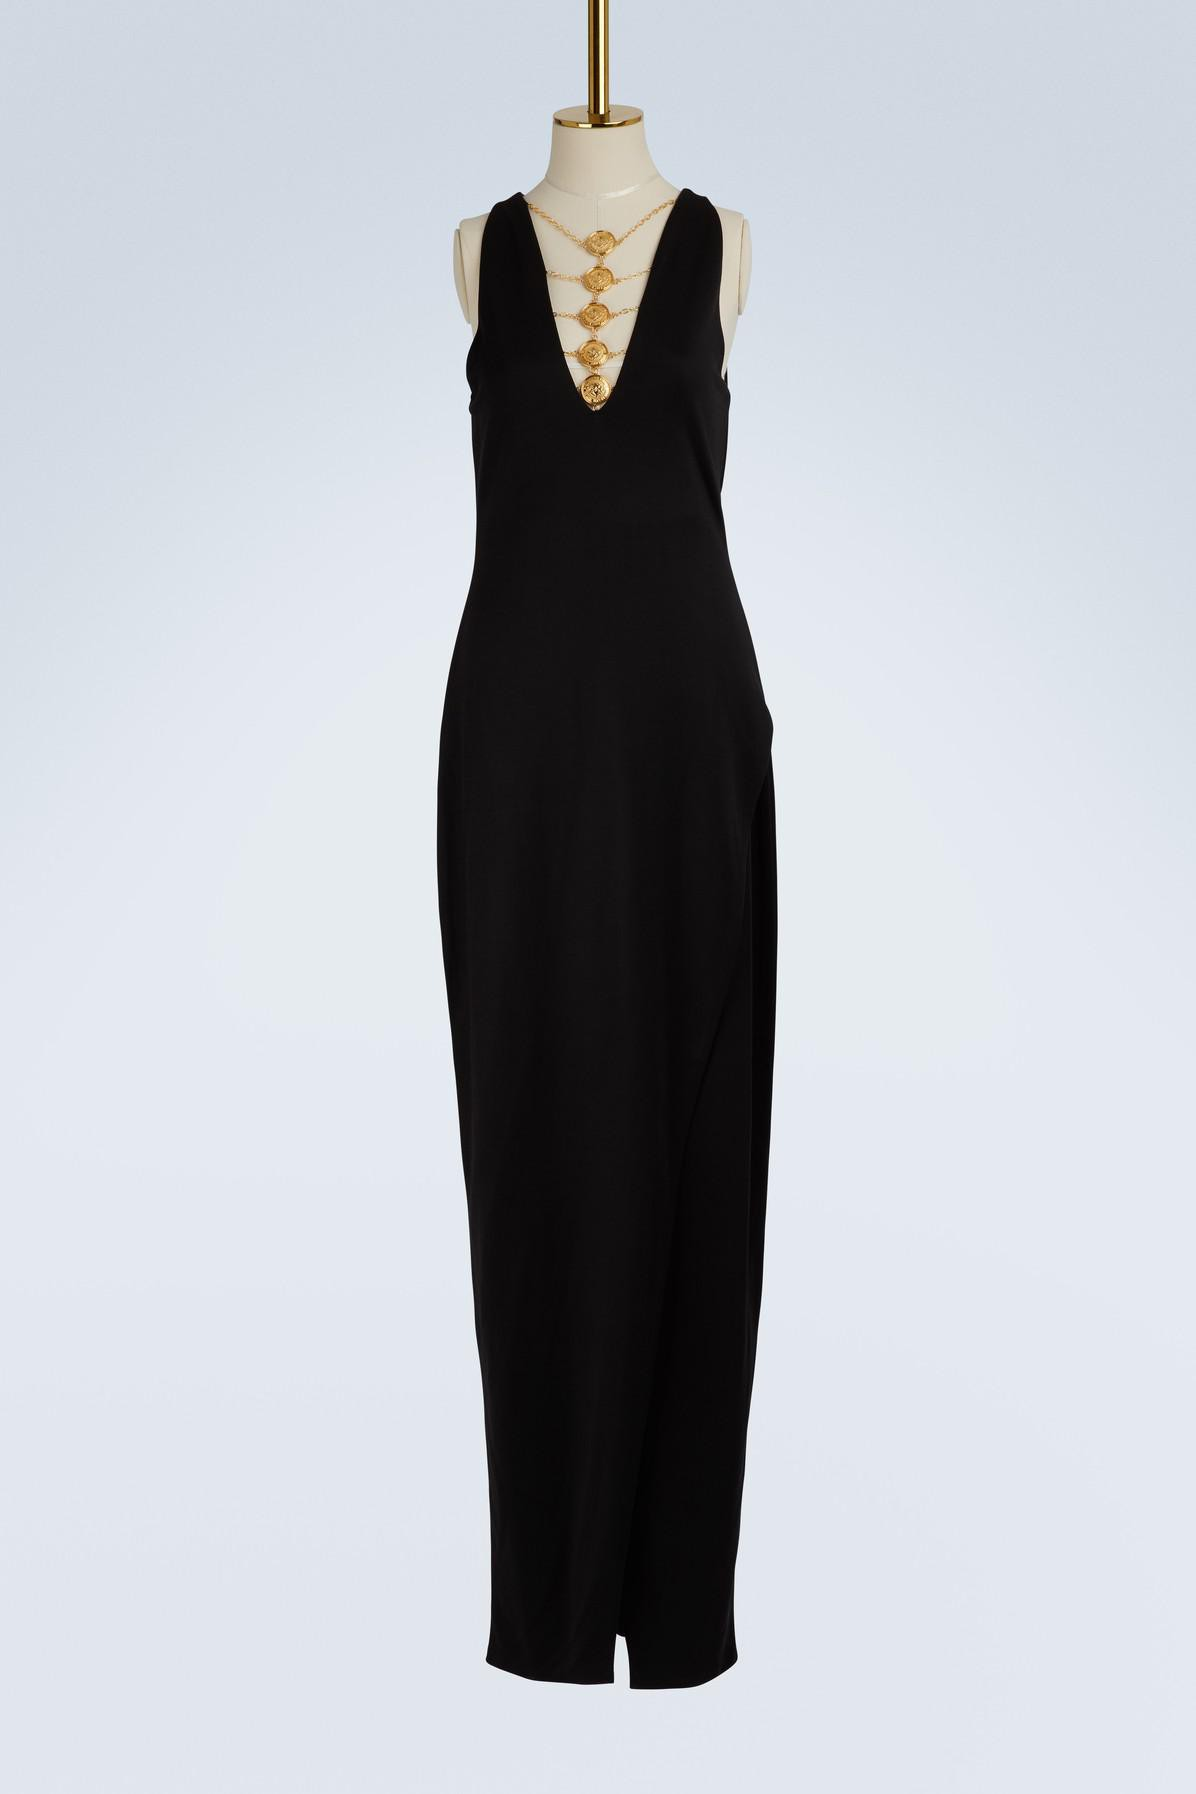 balmain-noir-c0100-coin-jewel-maxi-dress